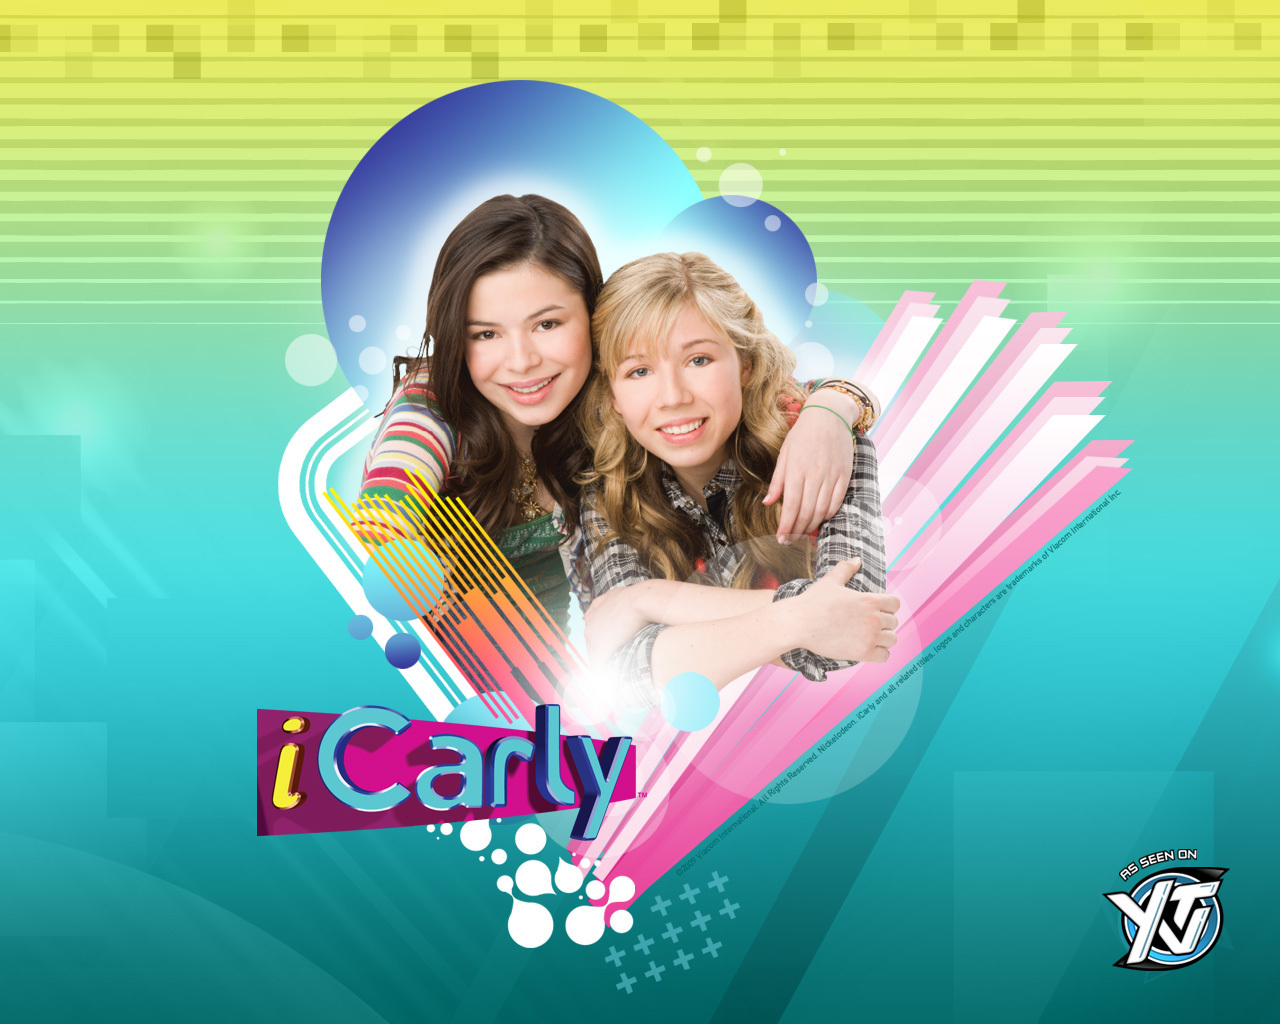 wallpaper 9 - icarly wallpaper